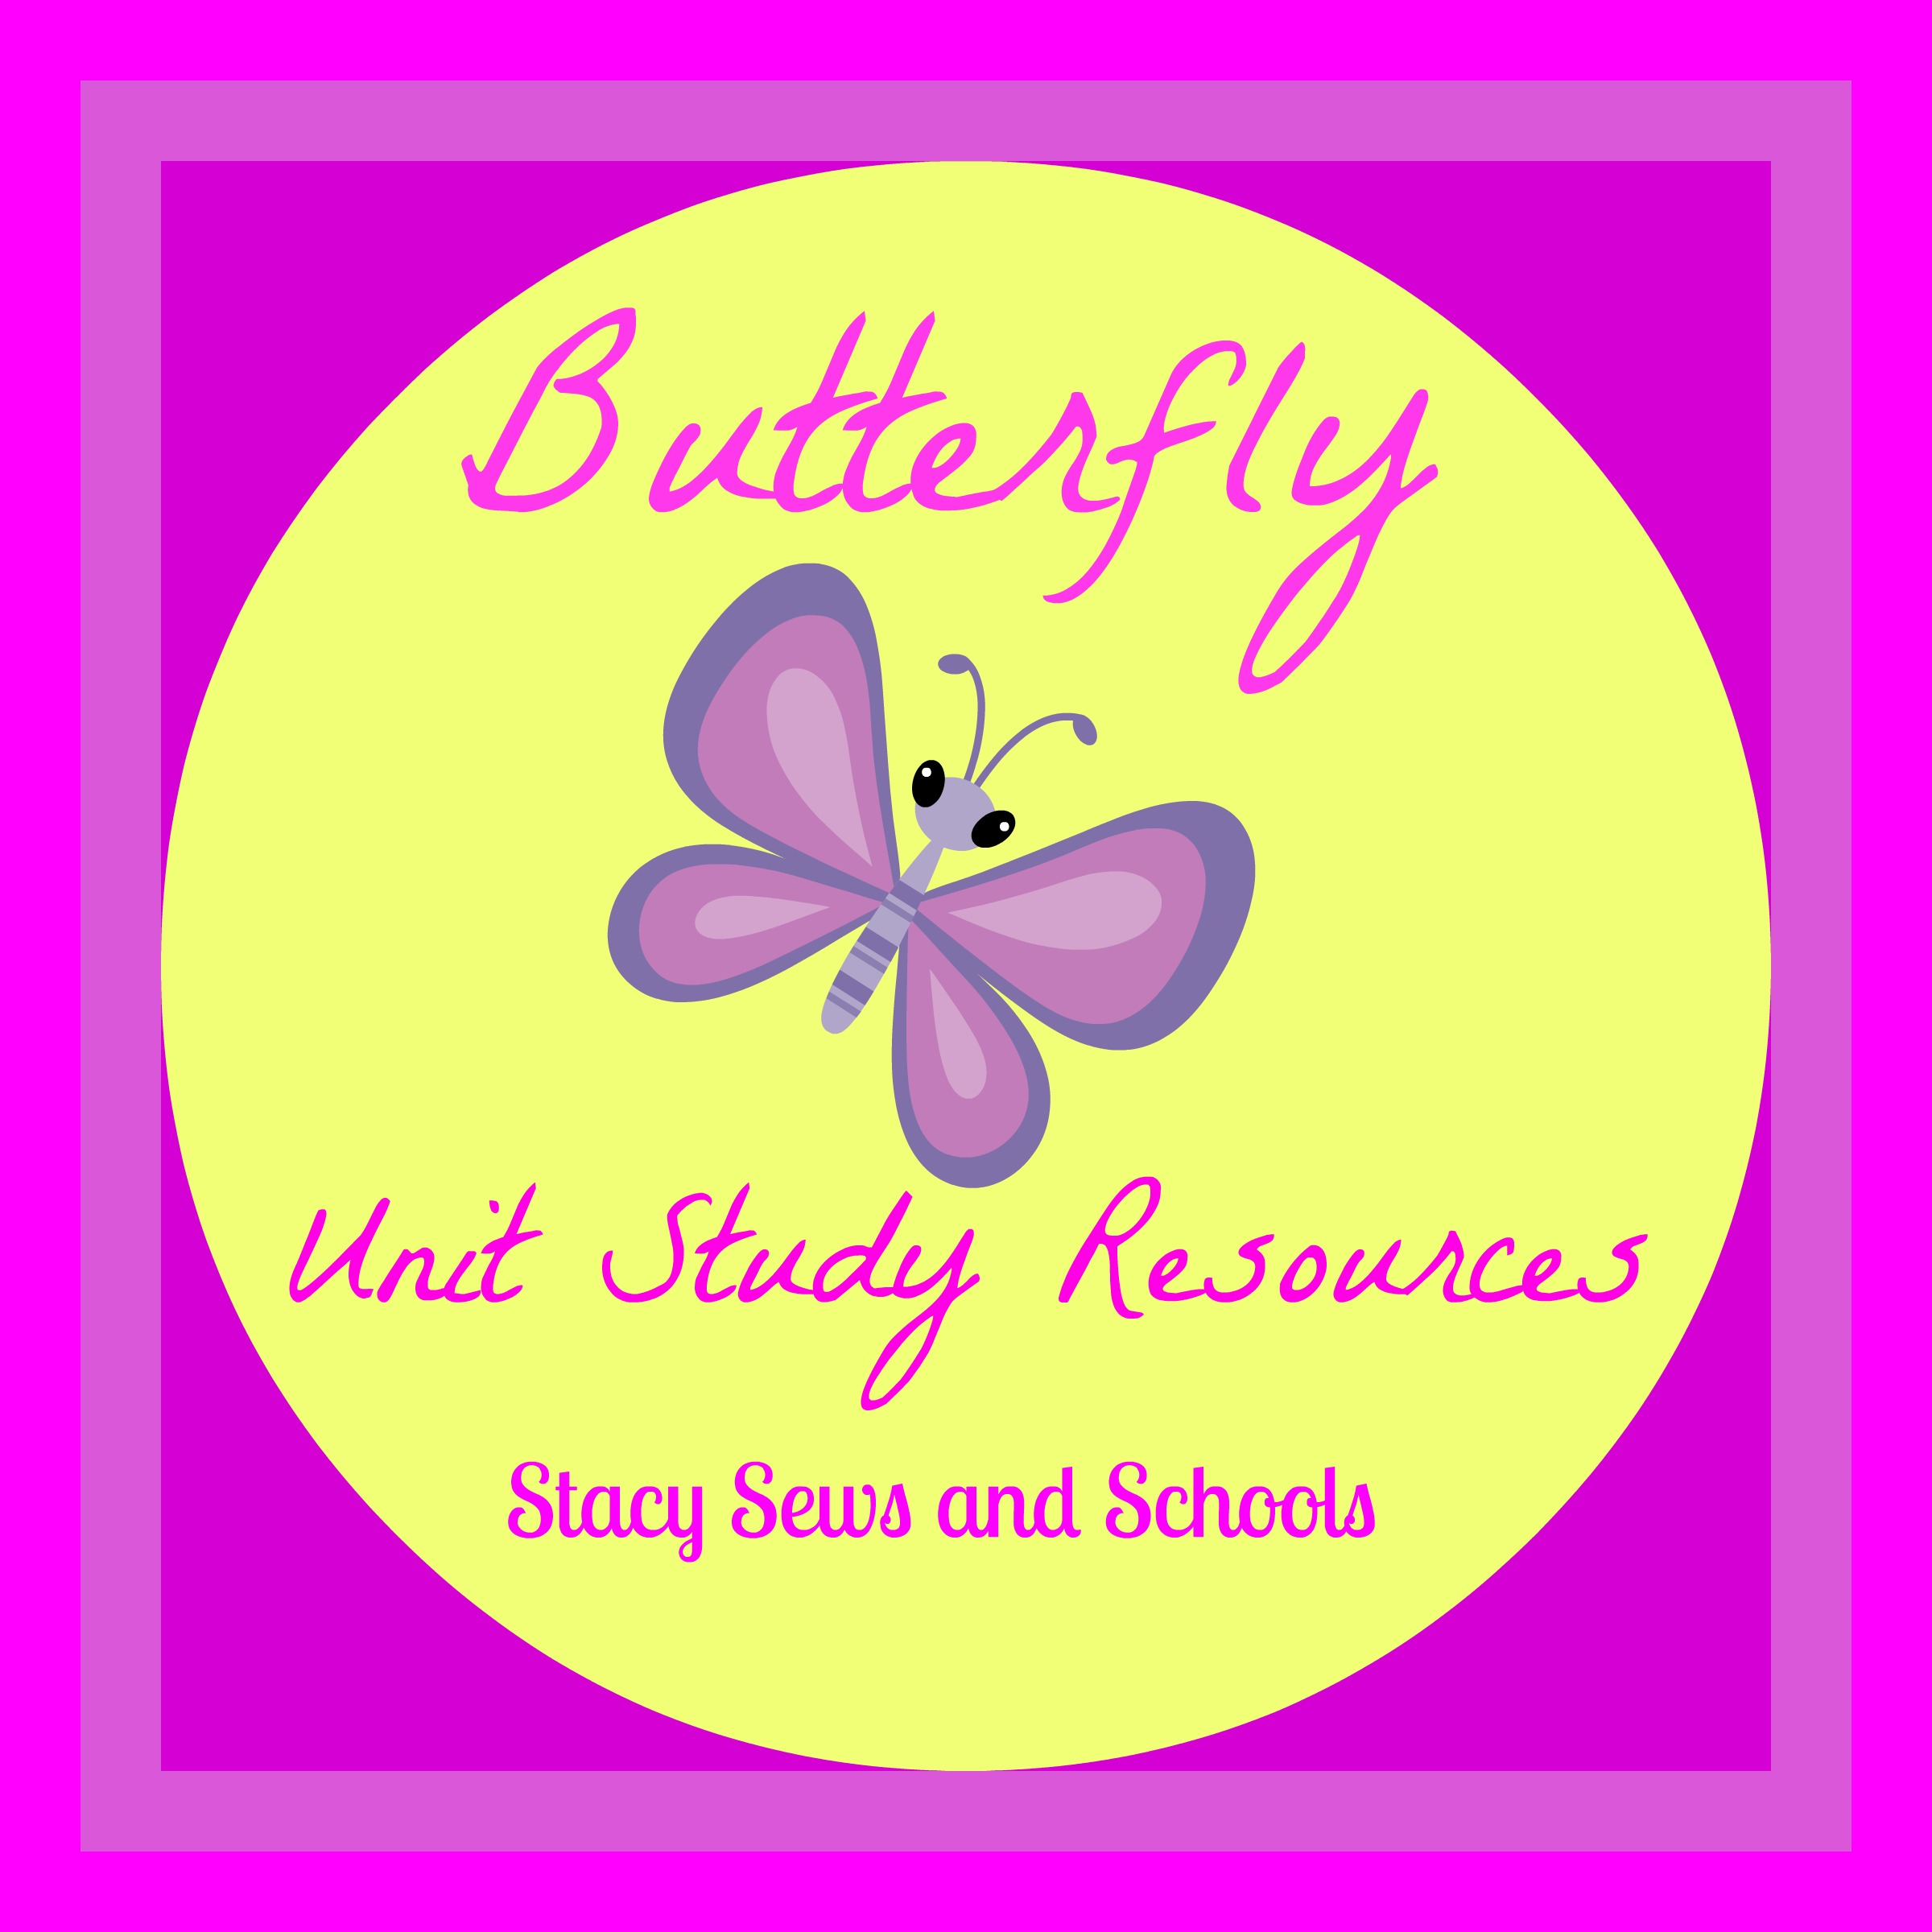 Butterfly Resources